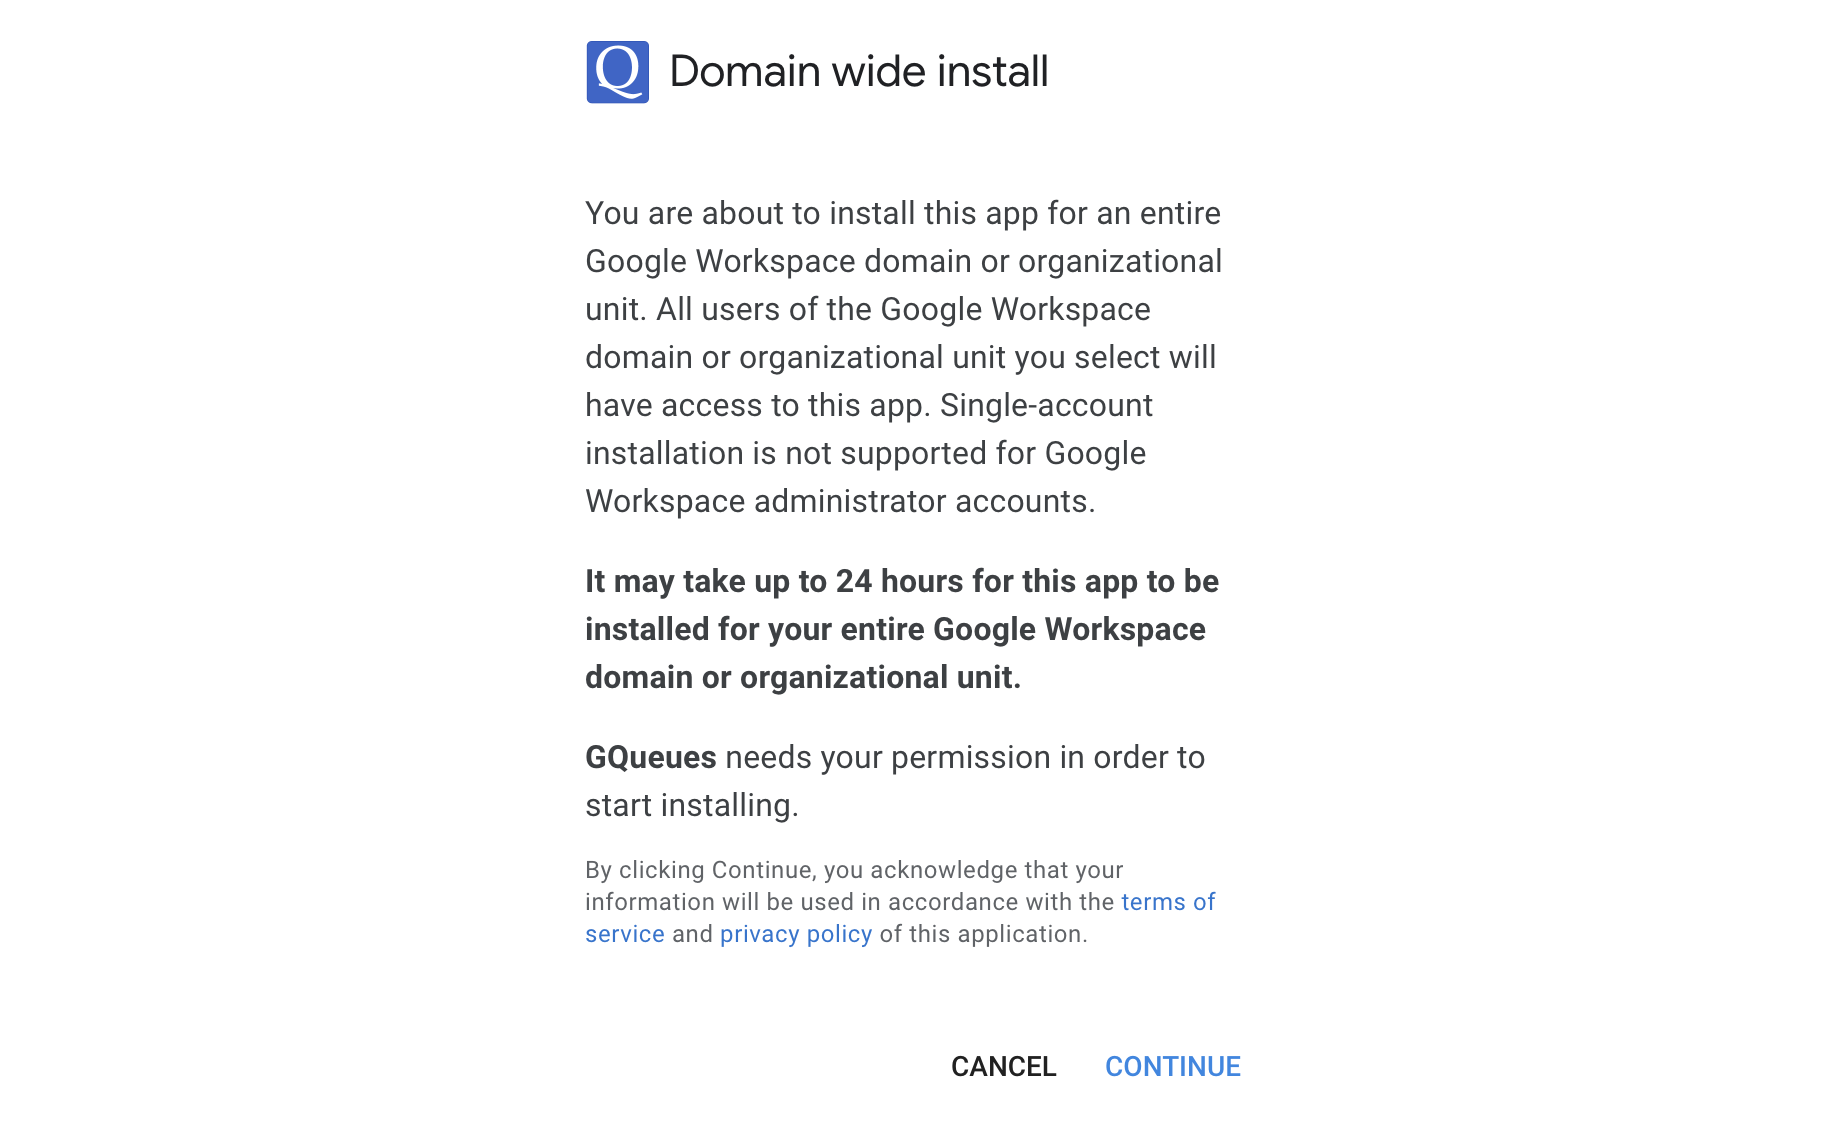 Follow the prompts to allow domain wide install